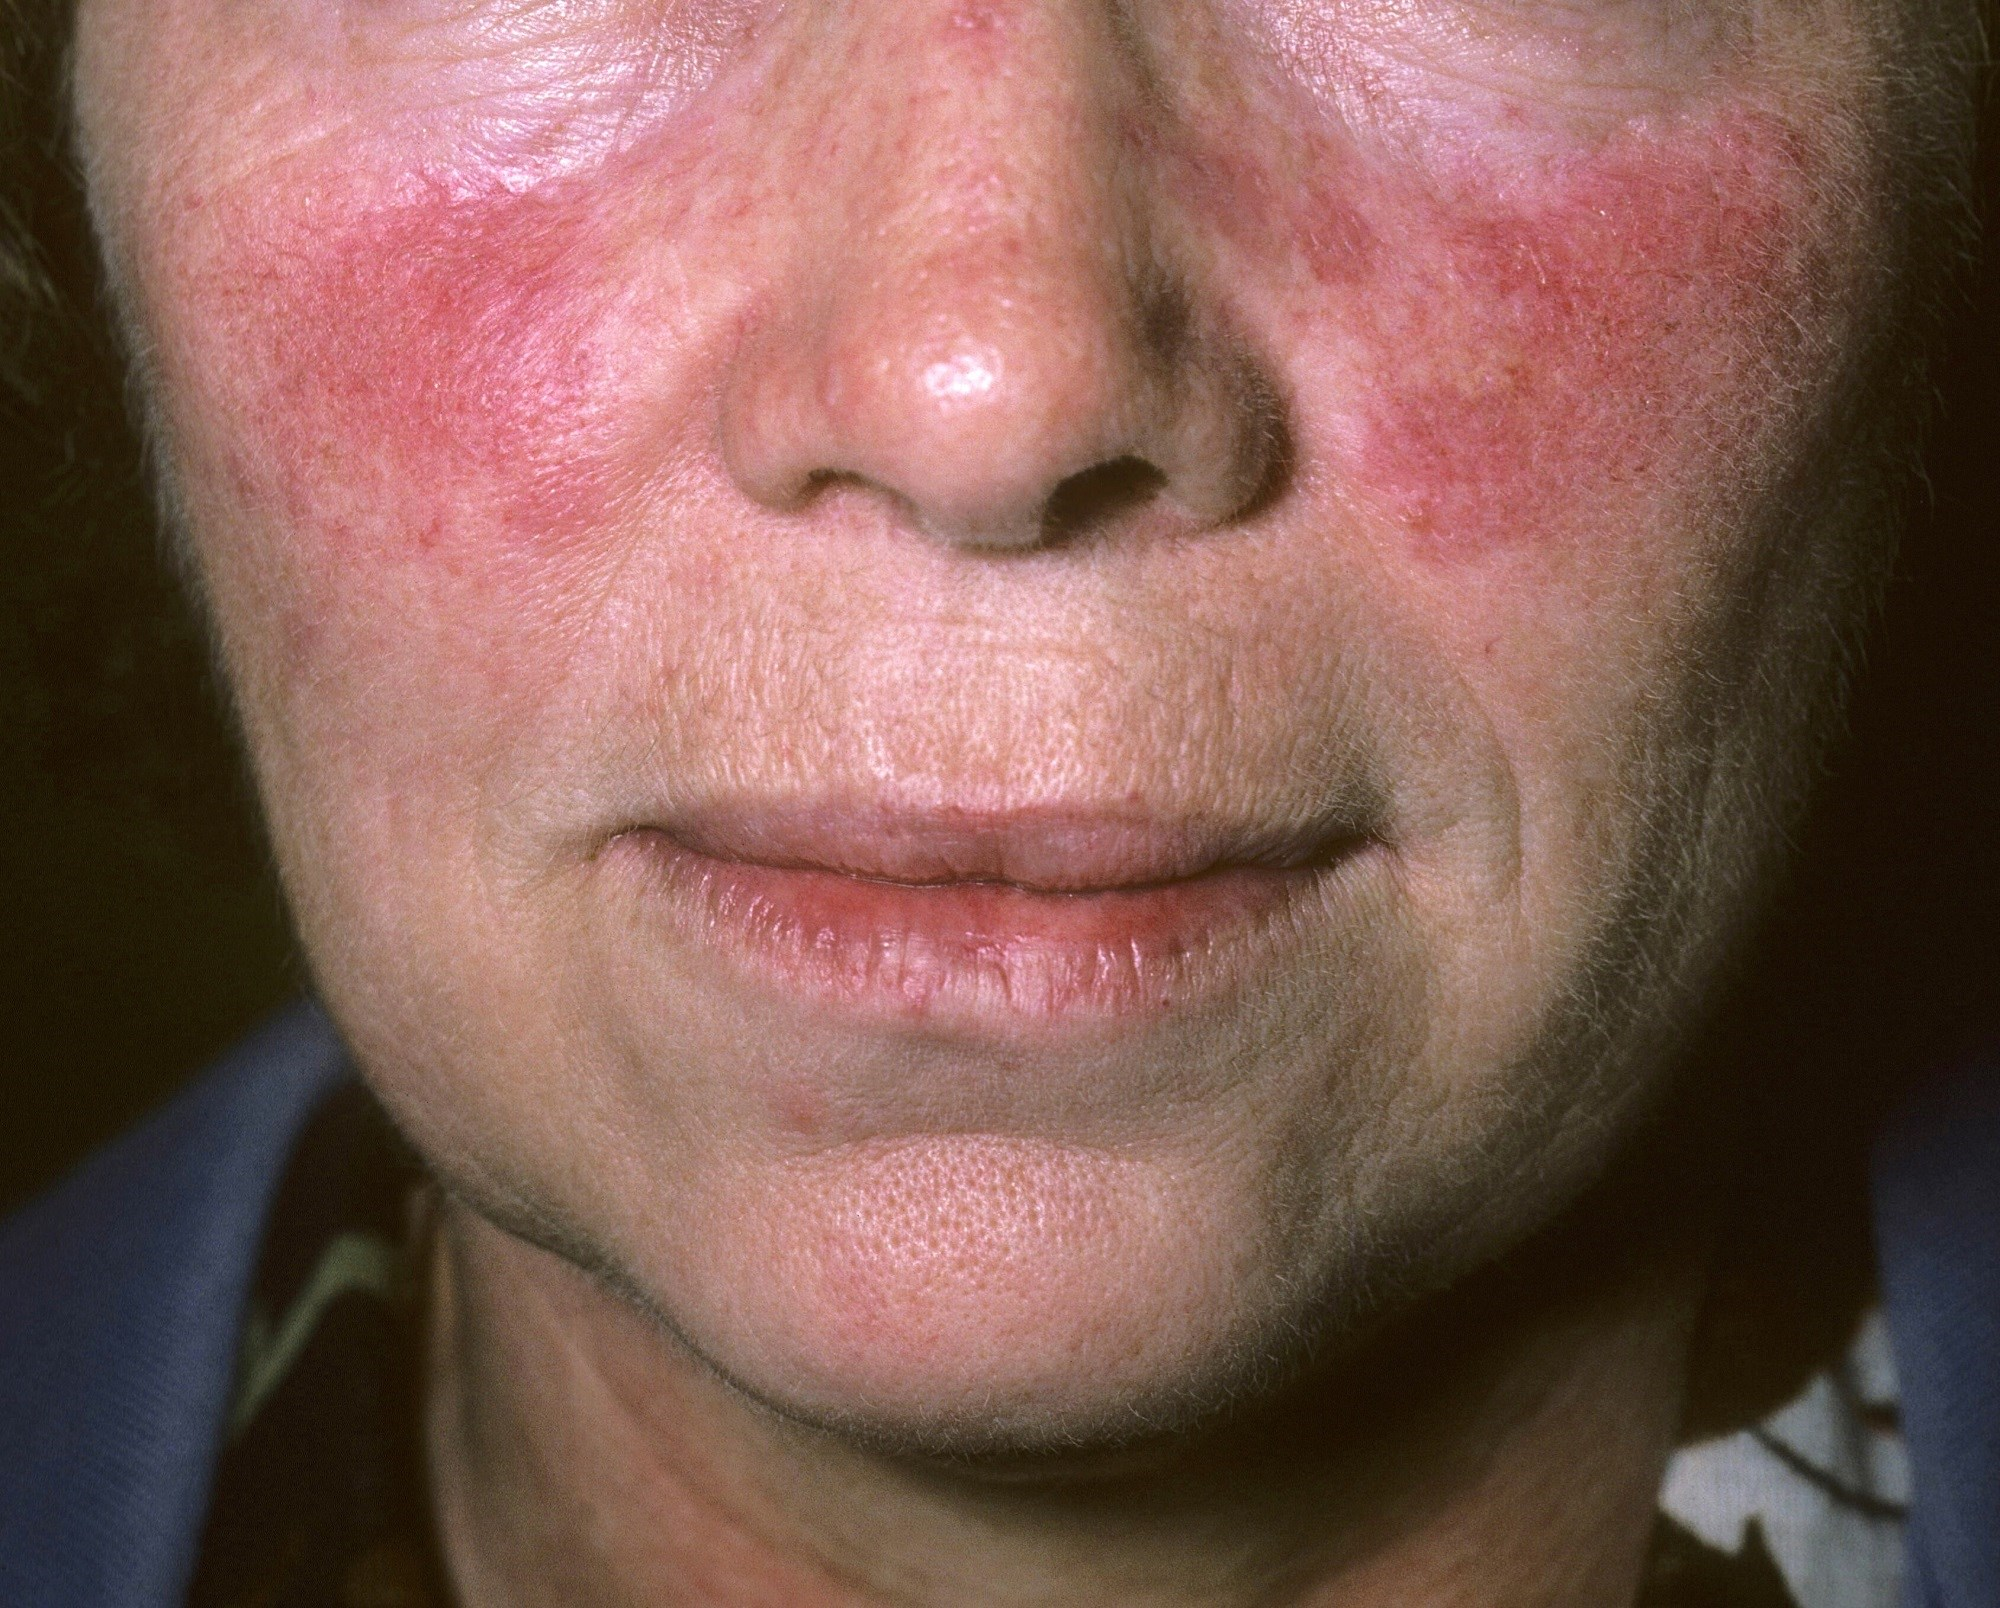 Patients were very happy with their results of the novel nonlaser thermomechanical system, Tixel, to treat rosacea.